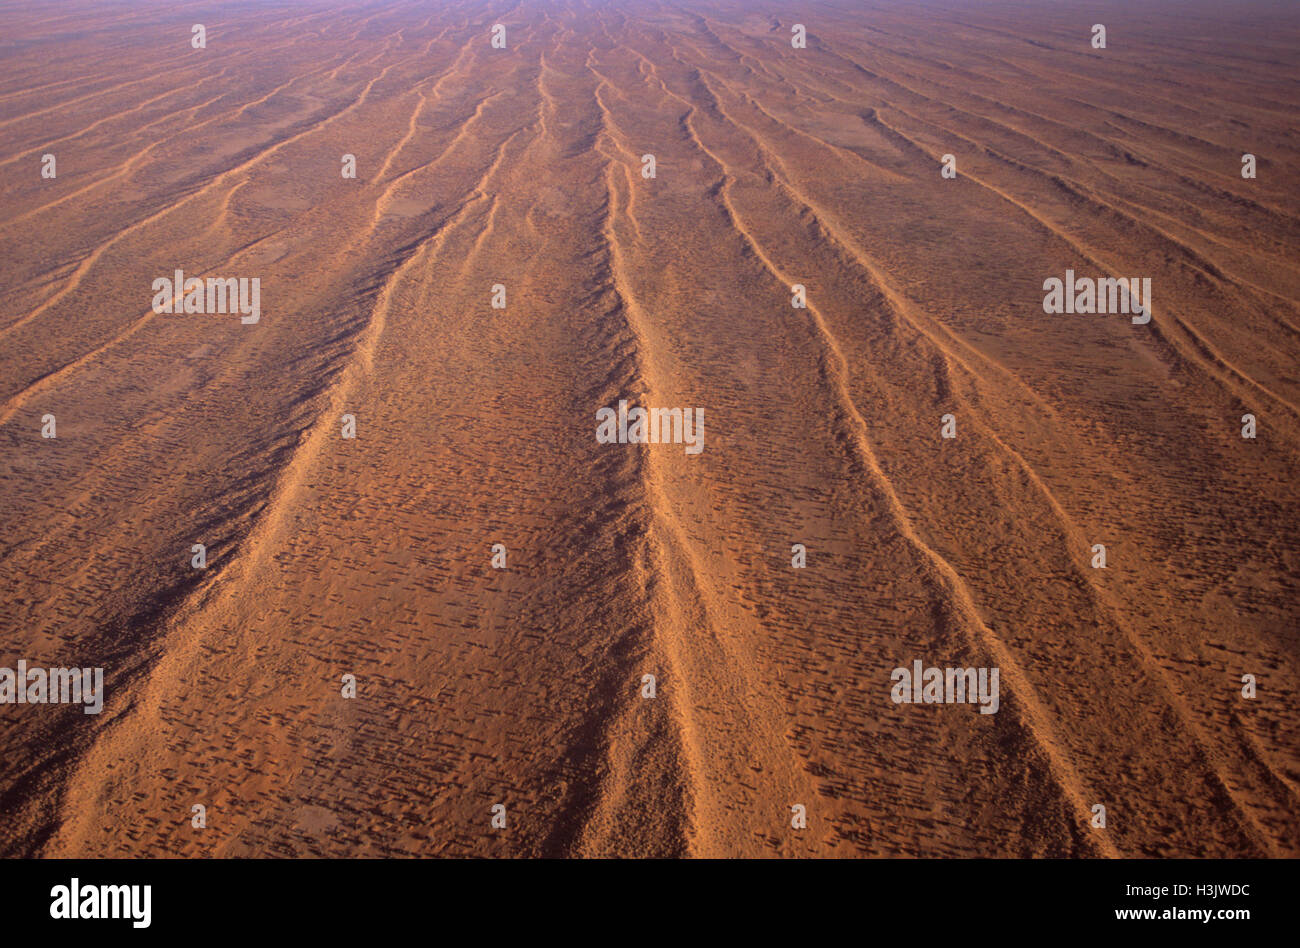 Aerial photograph of dunefields sand dunes and claypans - Stock Image